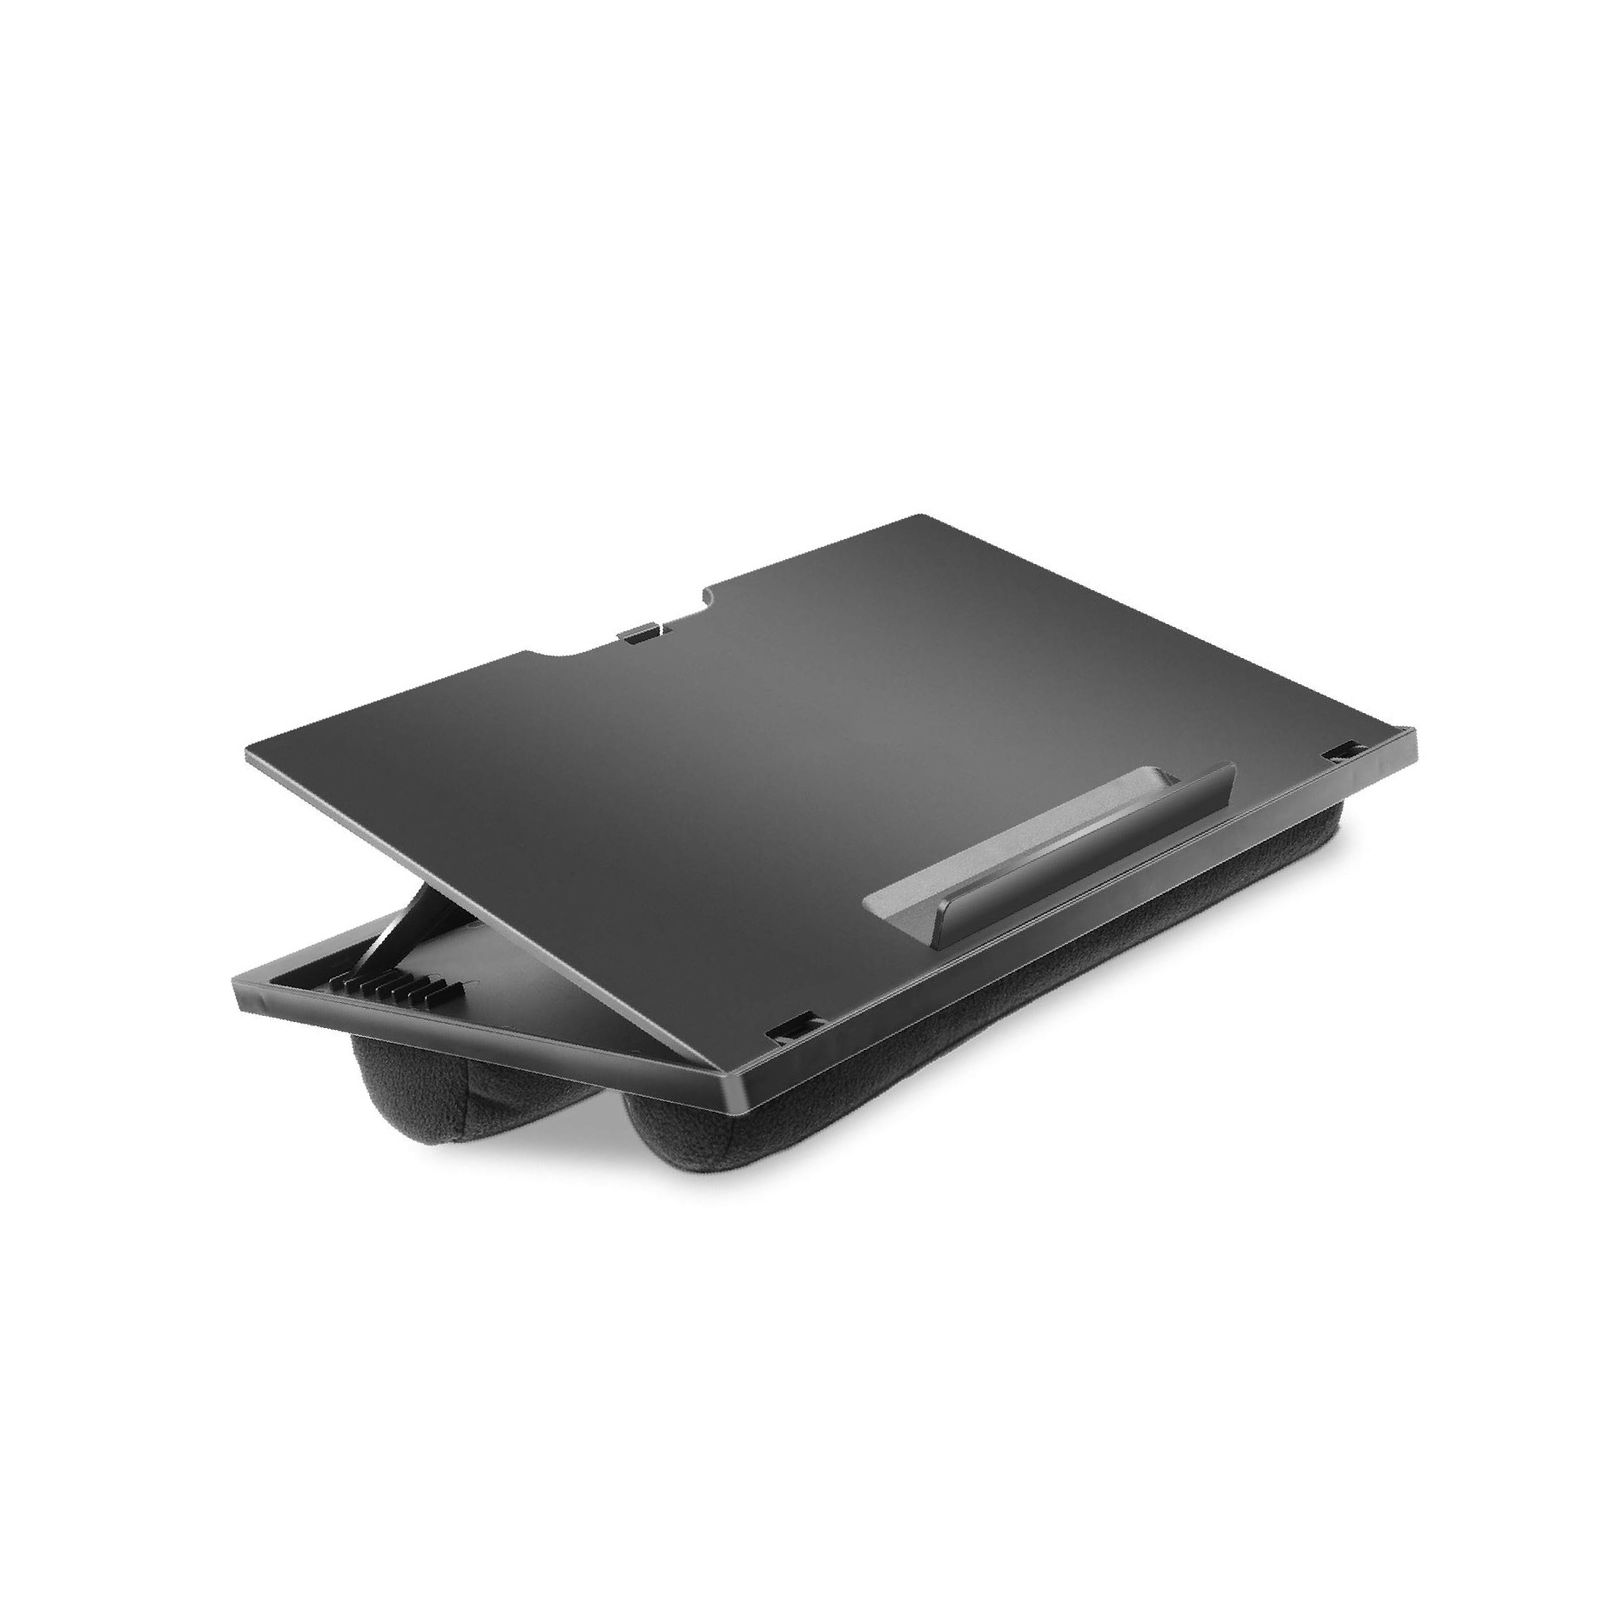 Adjustable Lap Desk with 8 Adjustable Angles & Dual Cushions Laptop Stand f... by huanuo